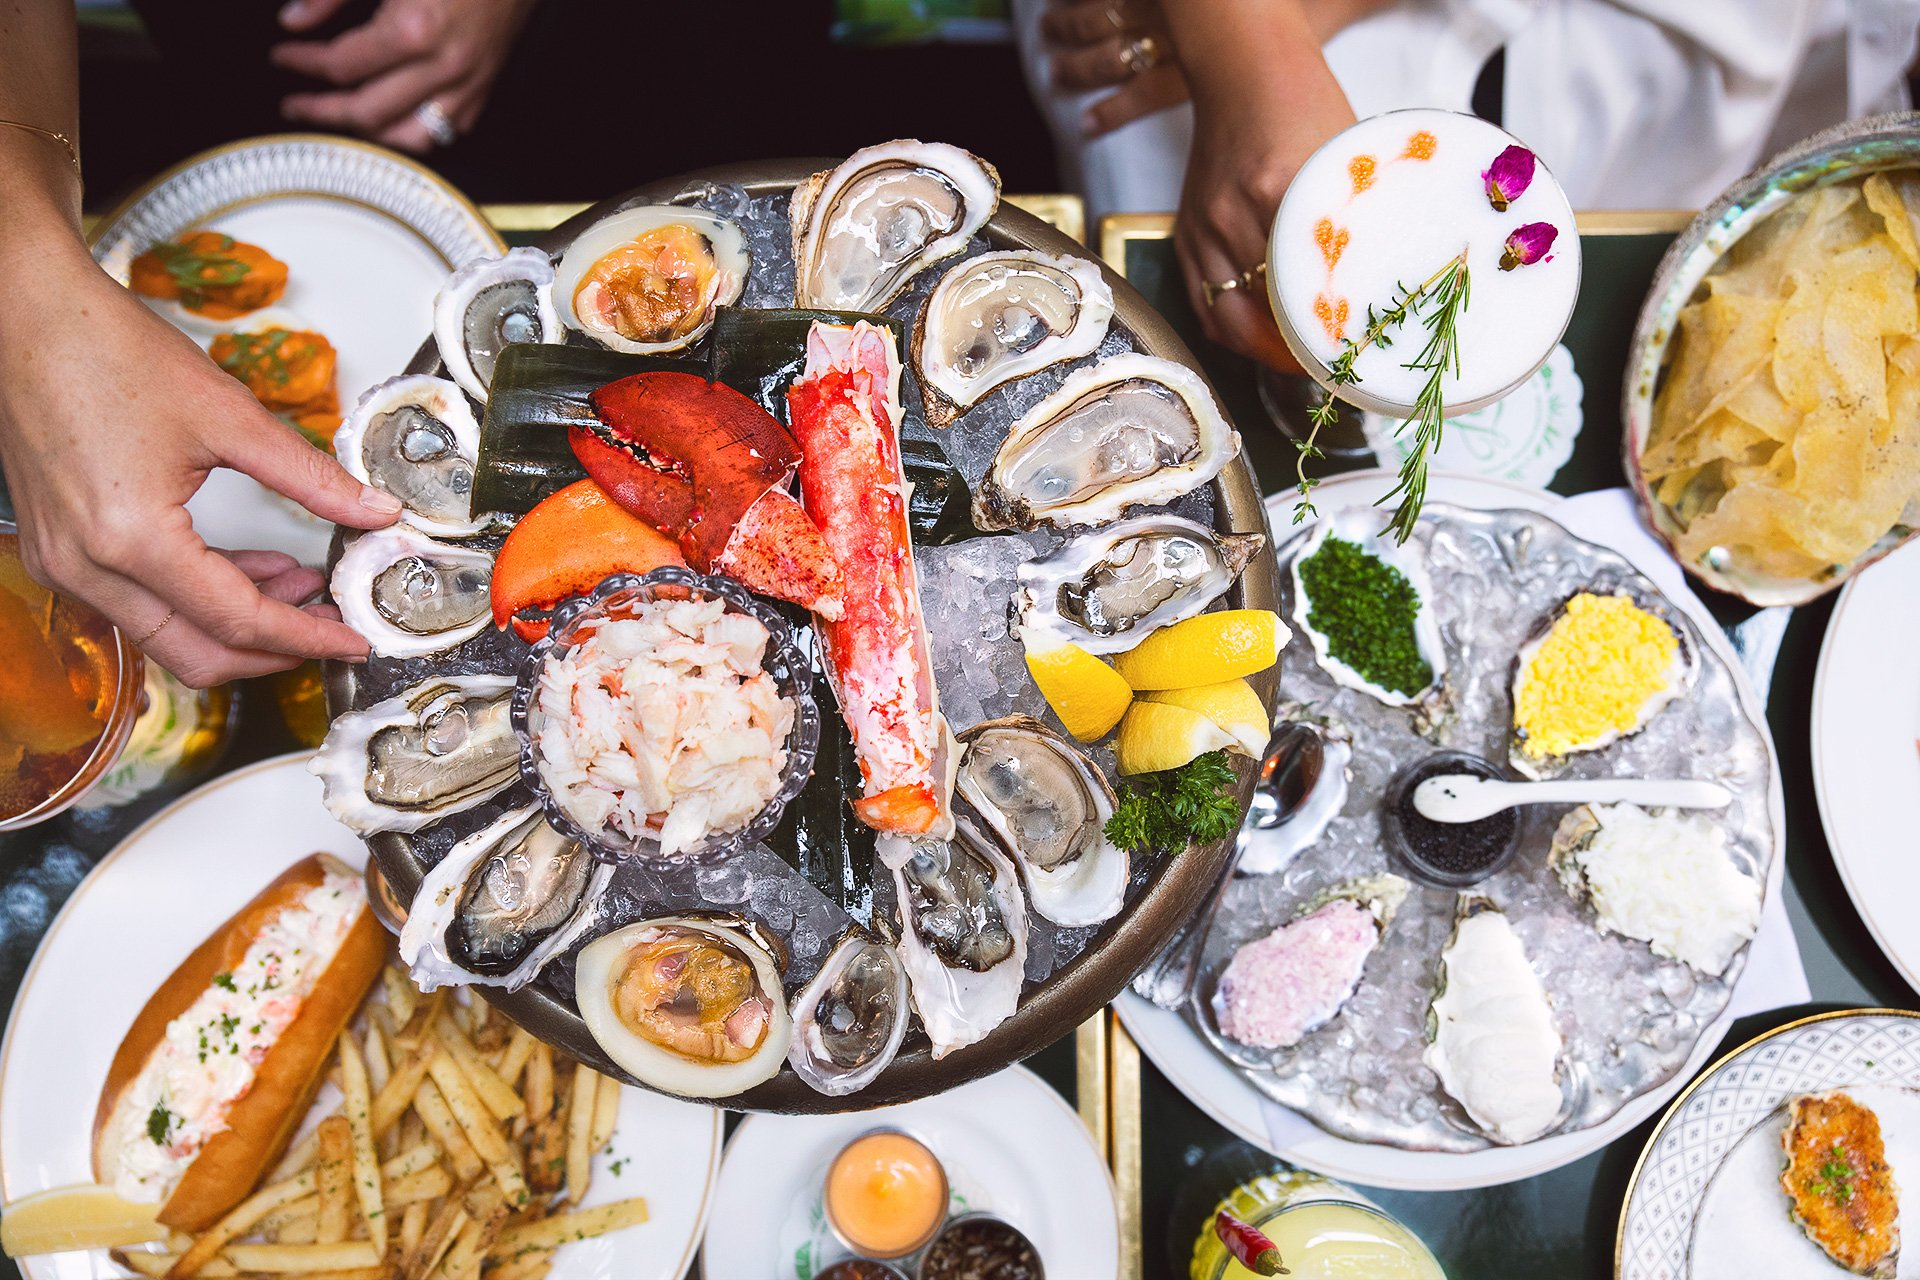 Leo's Oyster Bar, San Francisco | HonestlyYUM (honestlyyum.com)